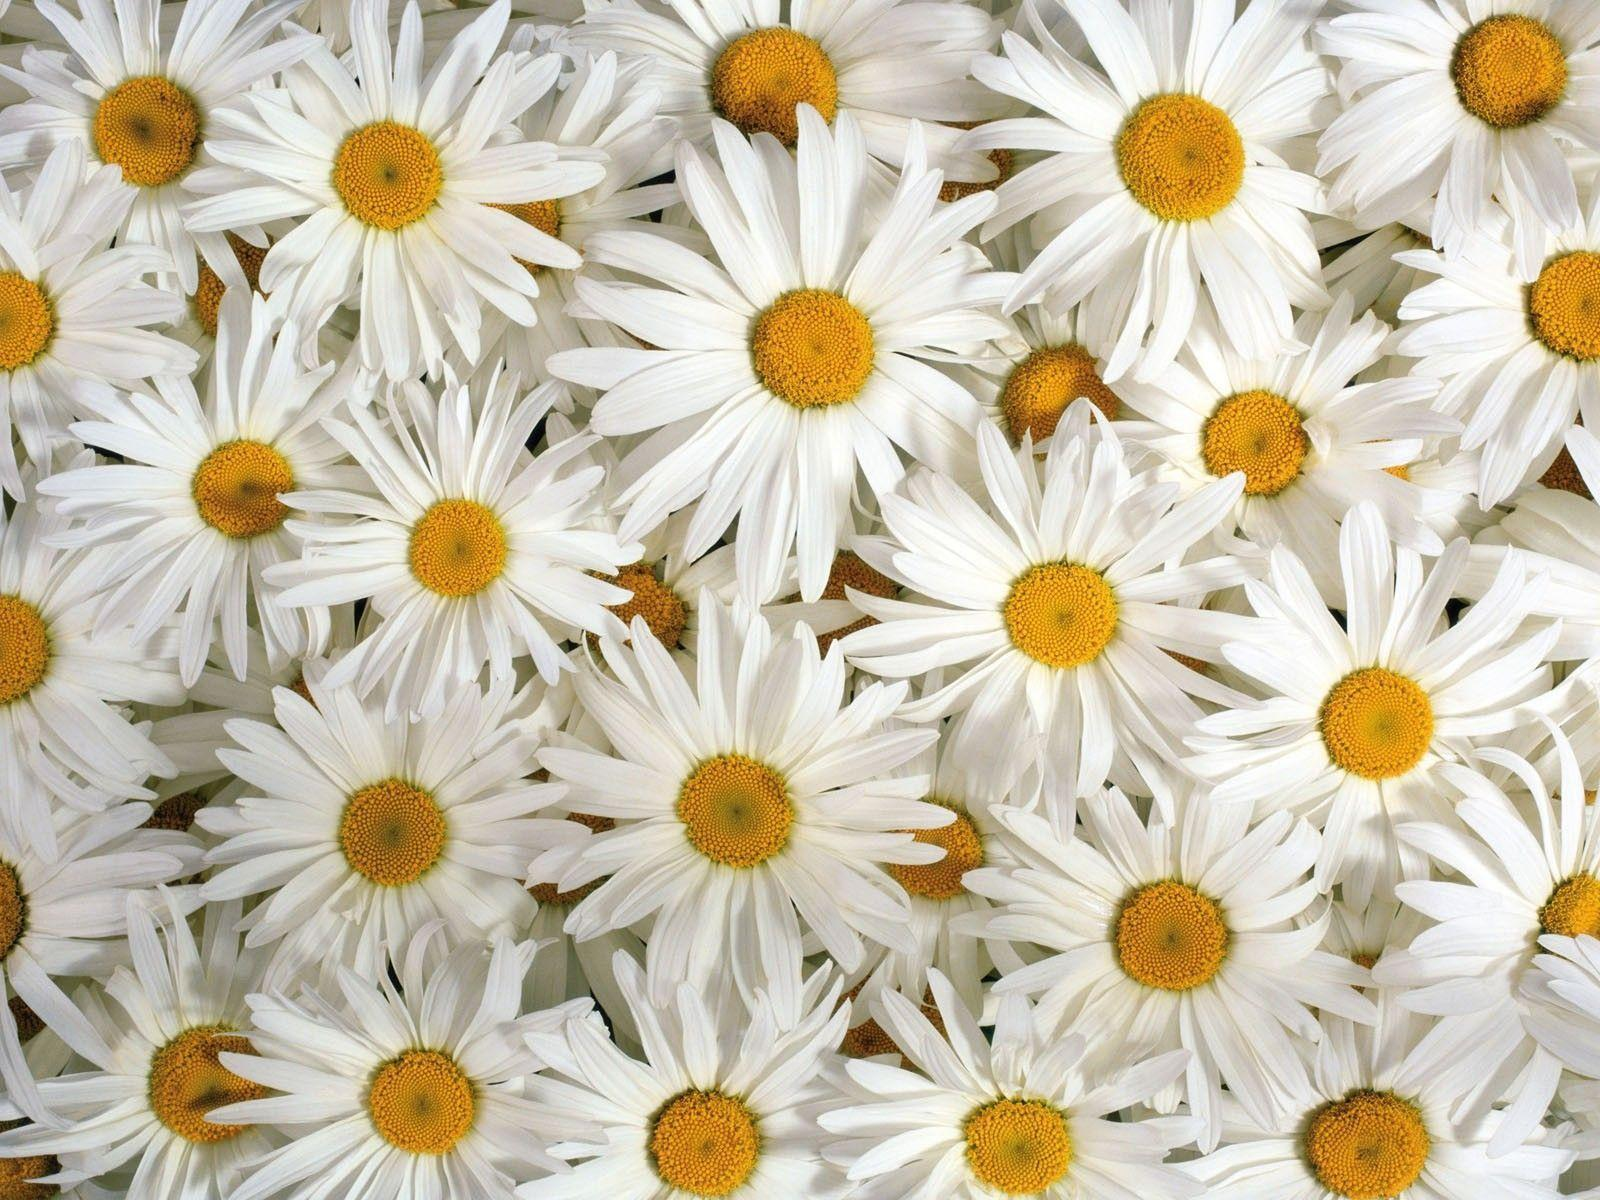 Daisy Flower Wallpapers - Wallpaper Cave